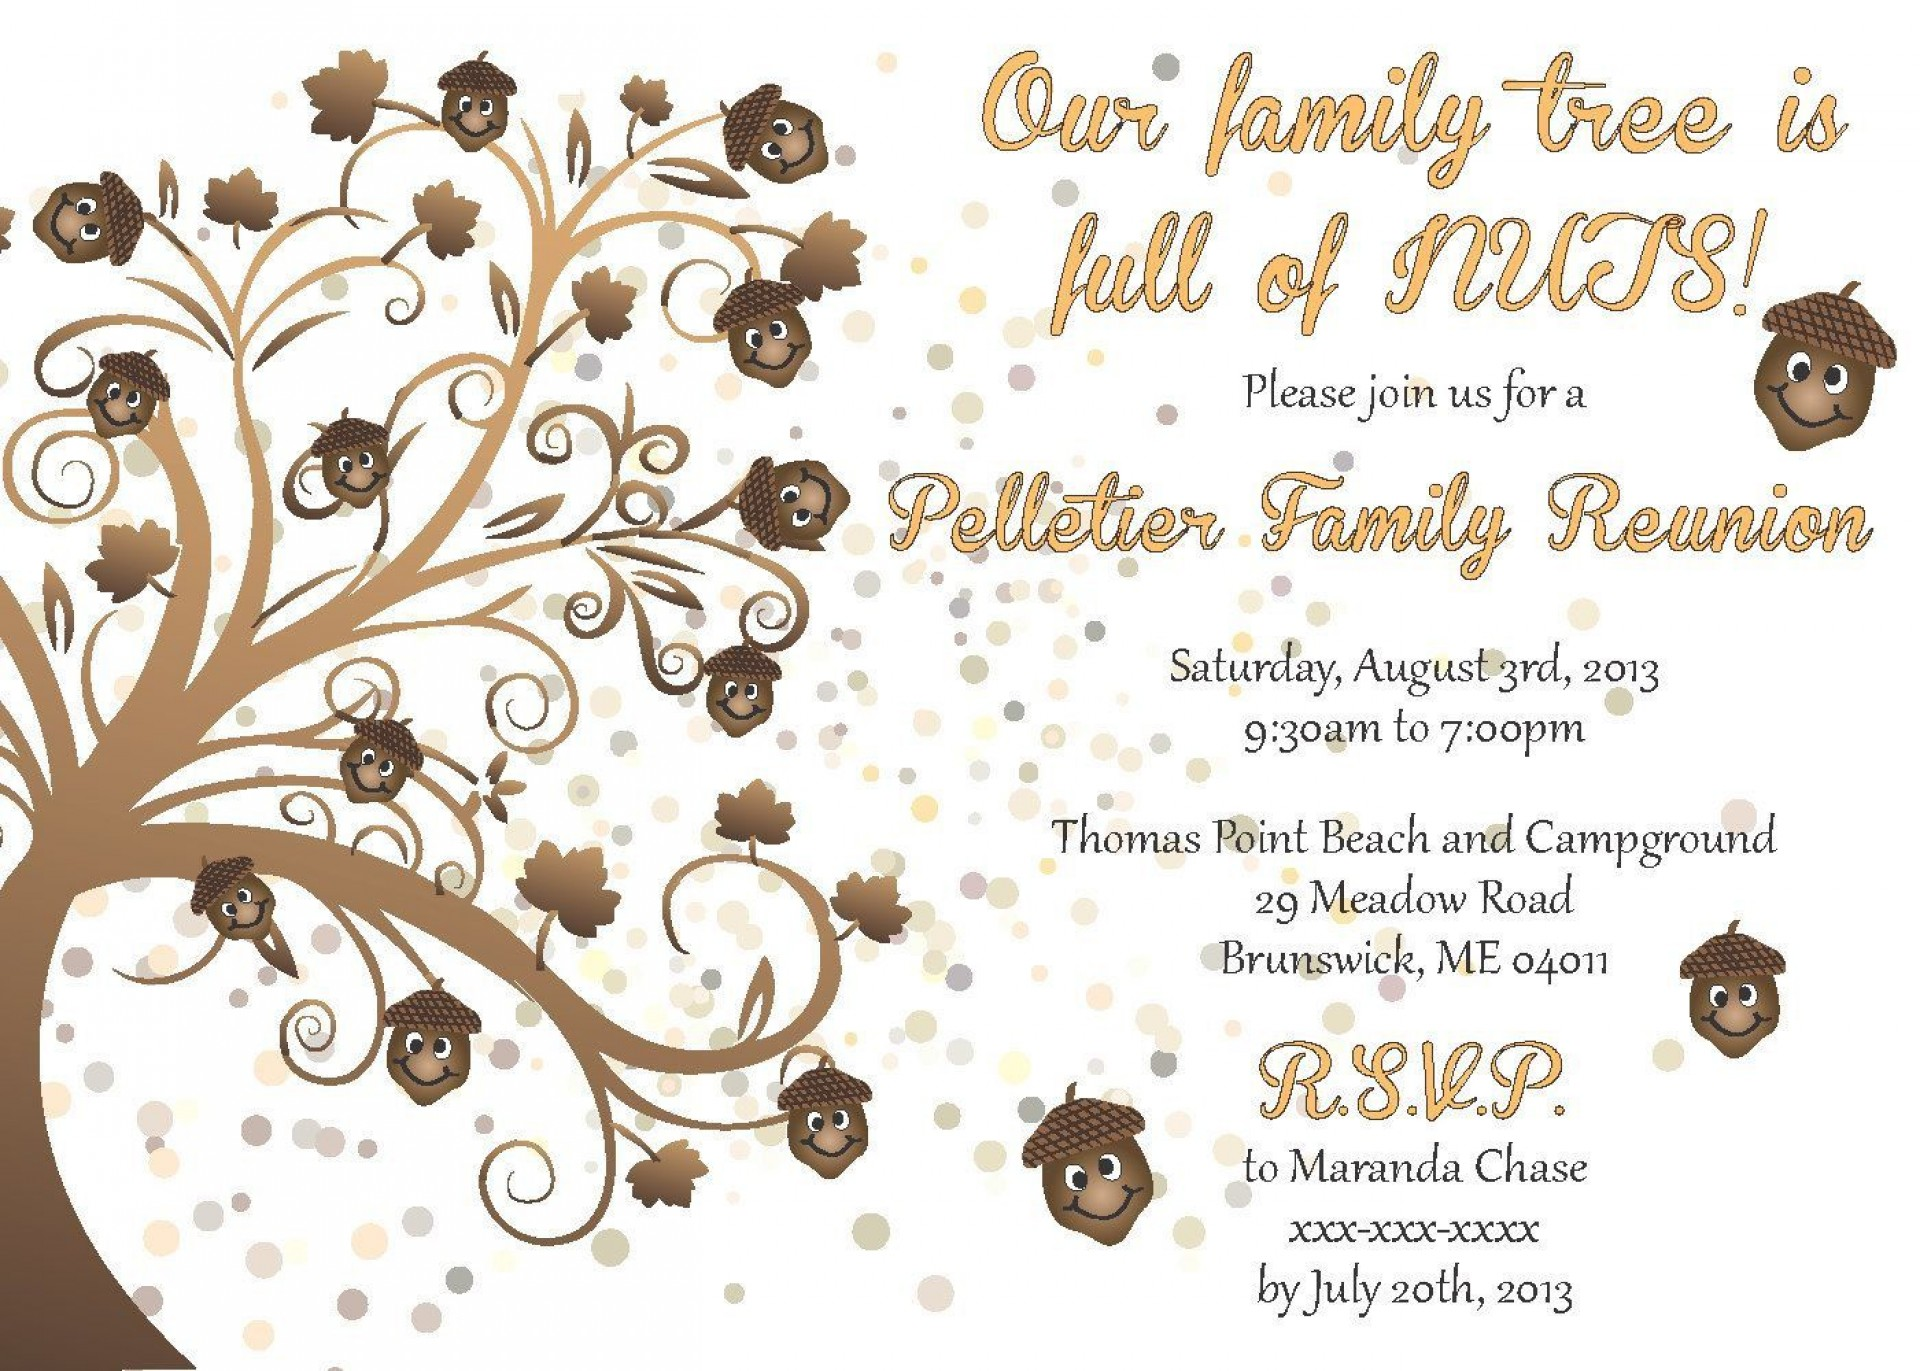 003 Simple Free Printable Family Reunion Invitation Template Highest Quality  Templates Flyer1920